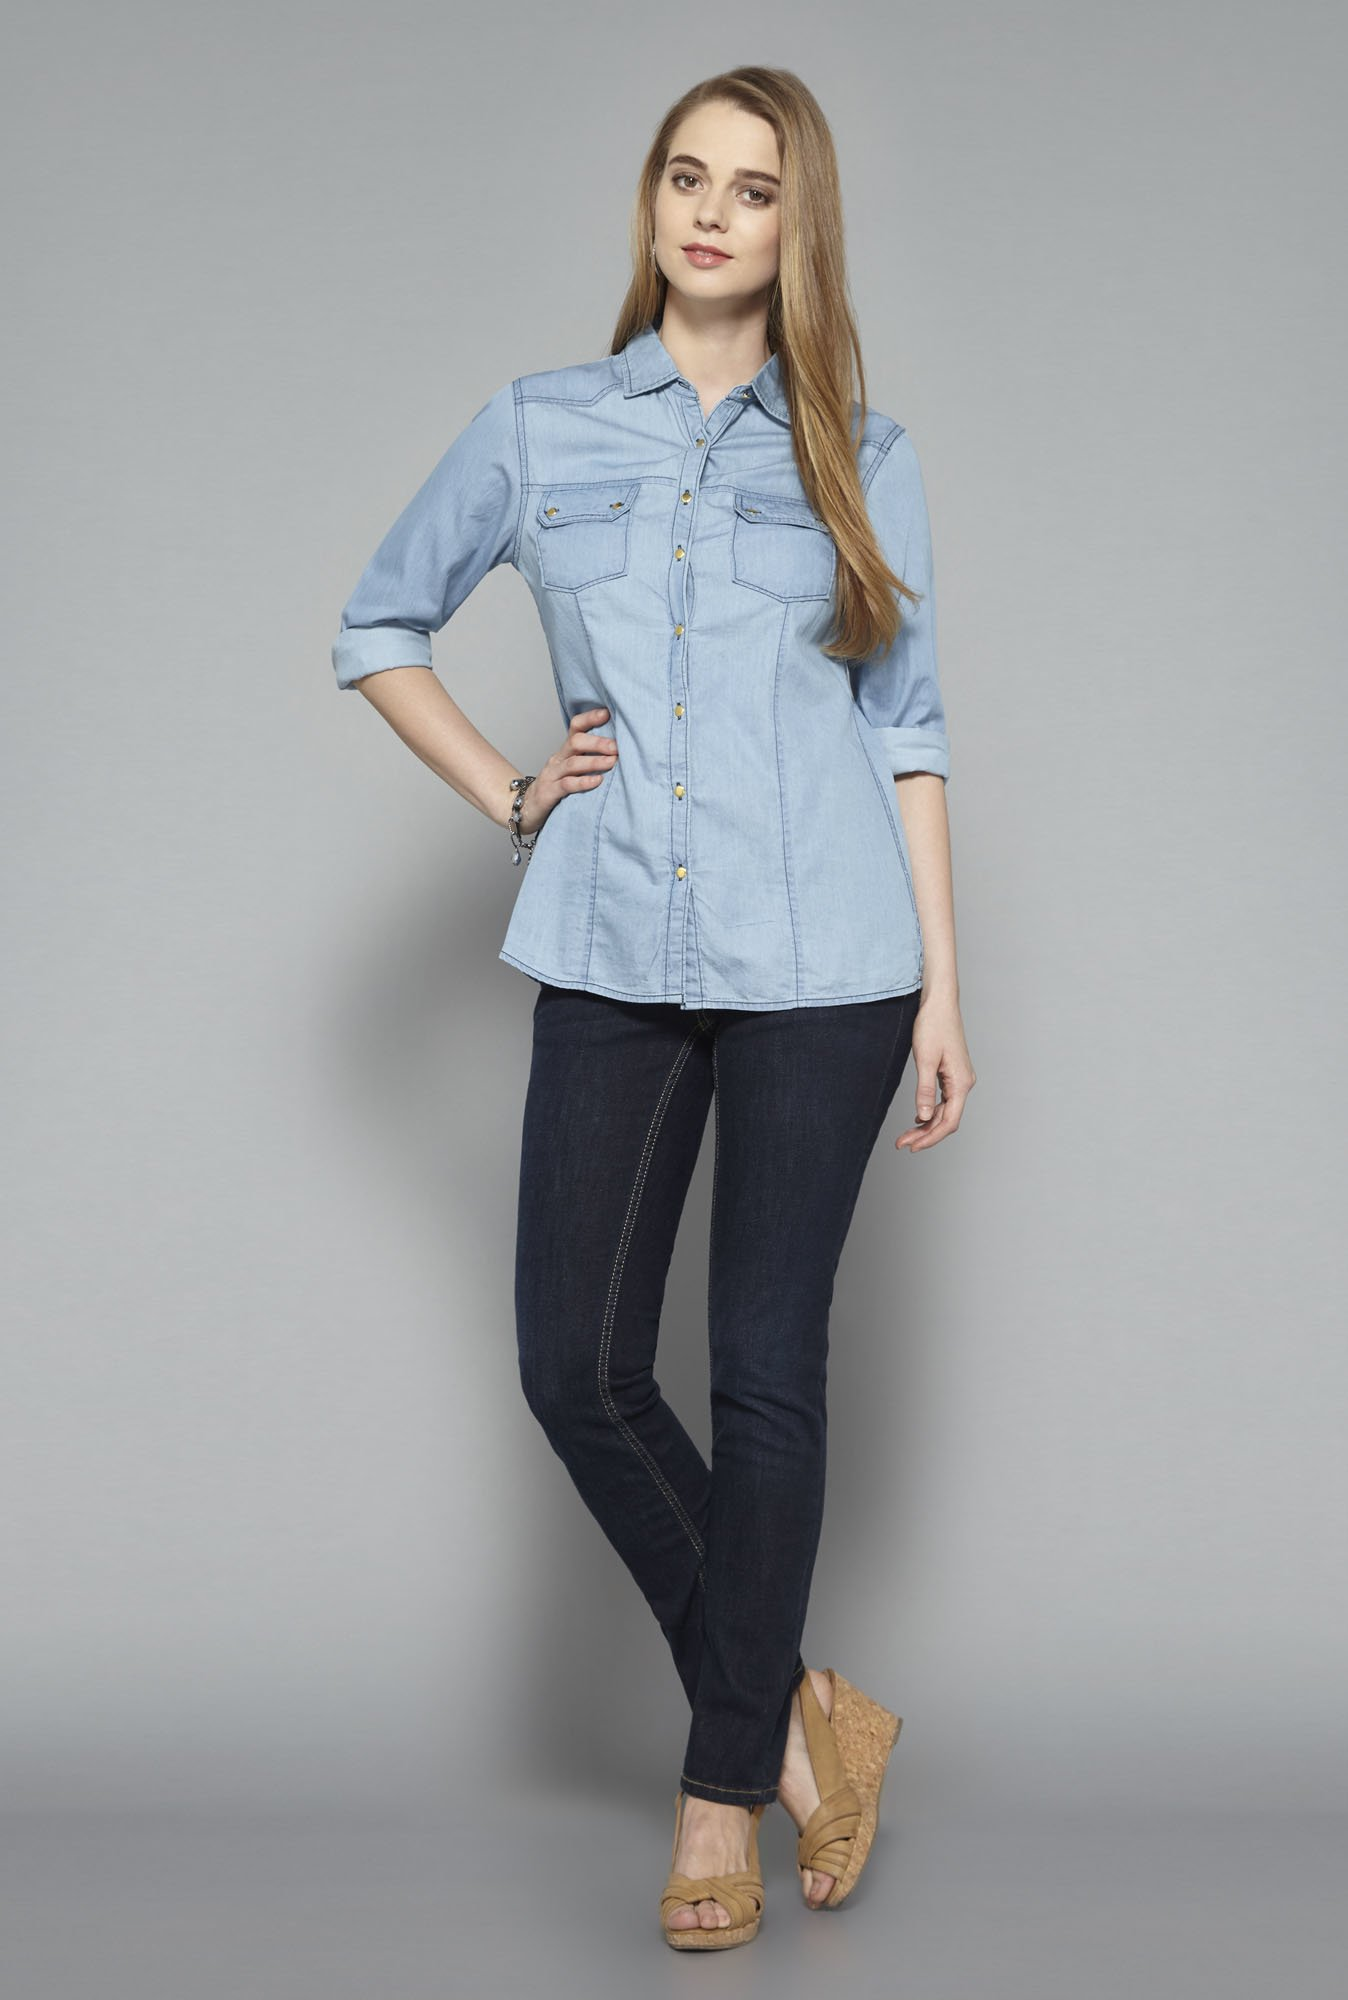 L.O.V Light Blue Blouse